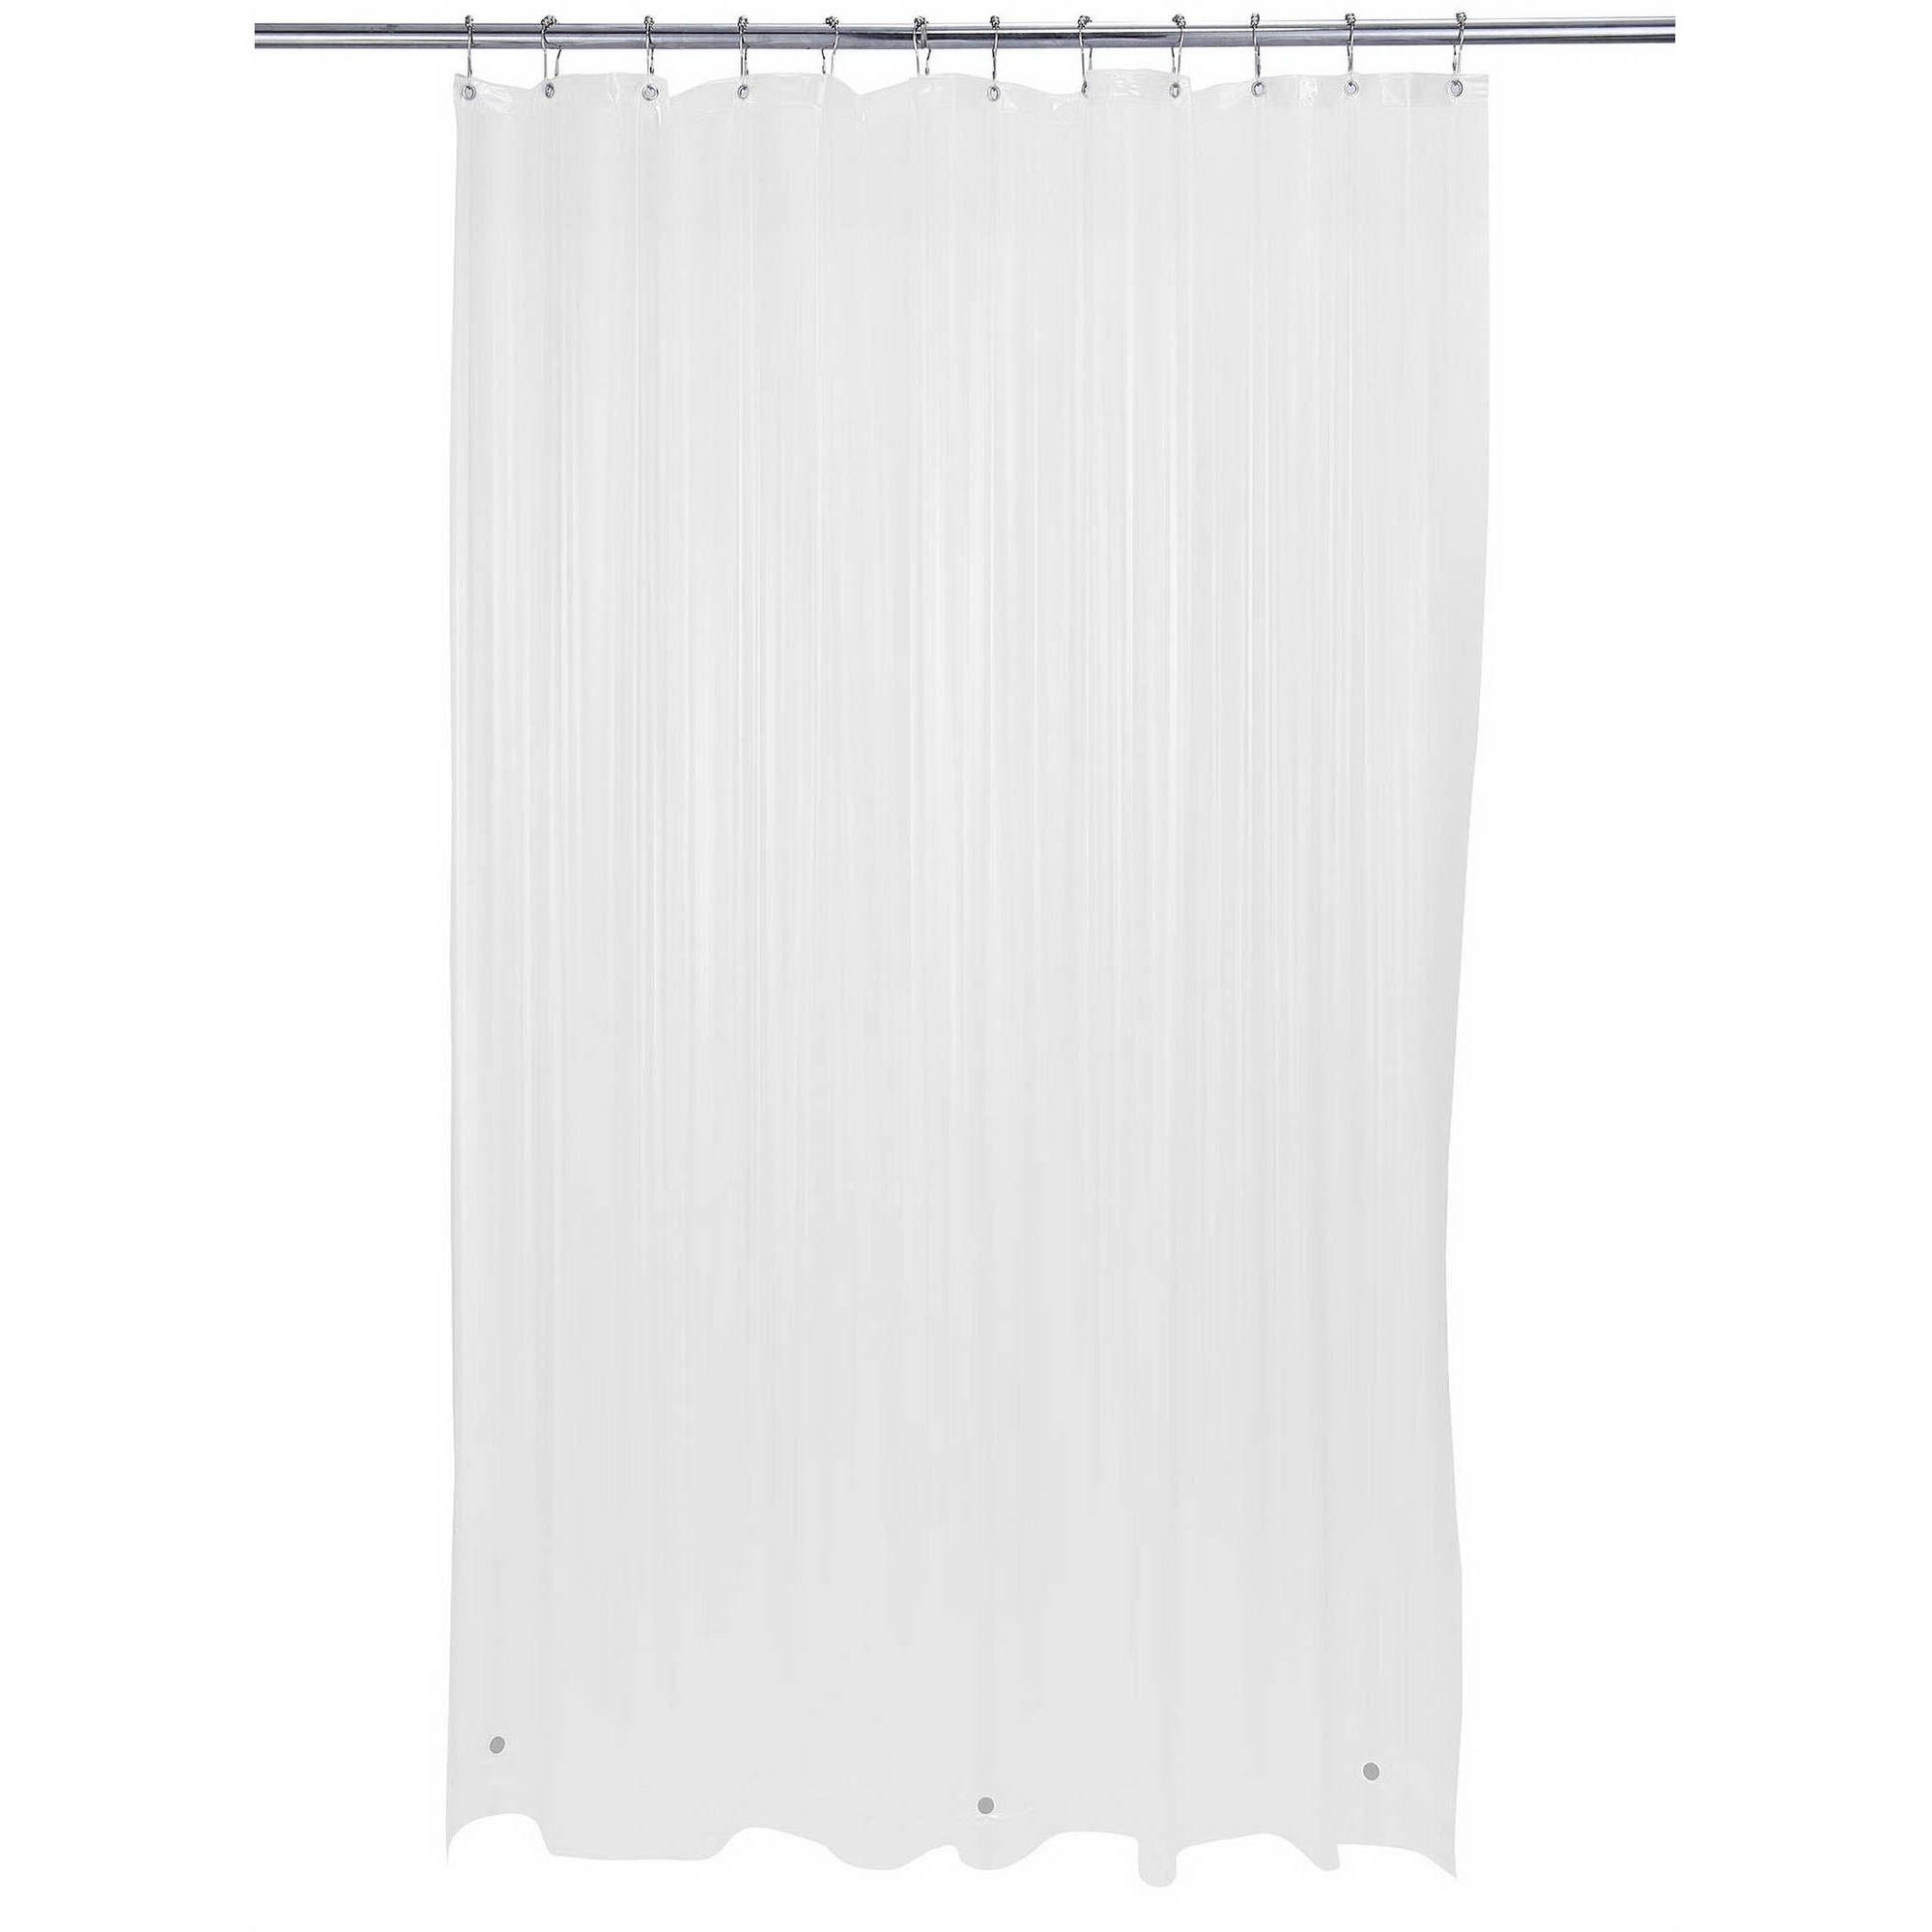 Sears Shower Curtain Rods Design Inside Sizing 2000 X